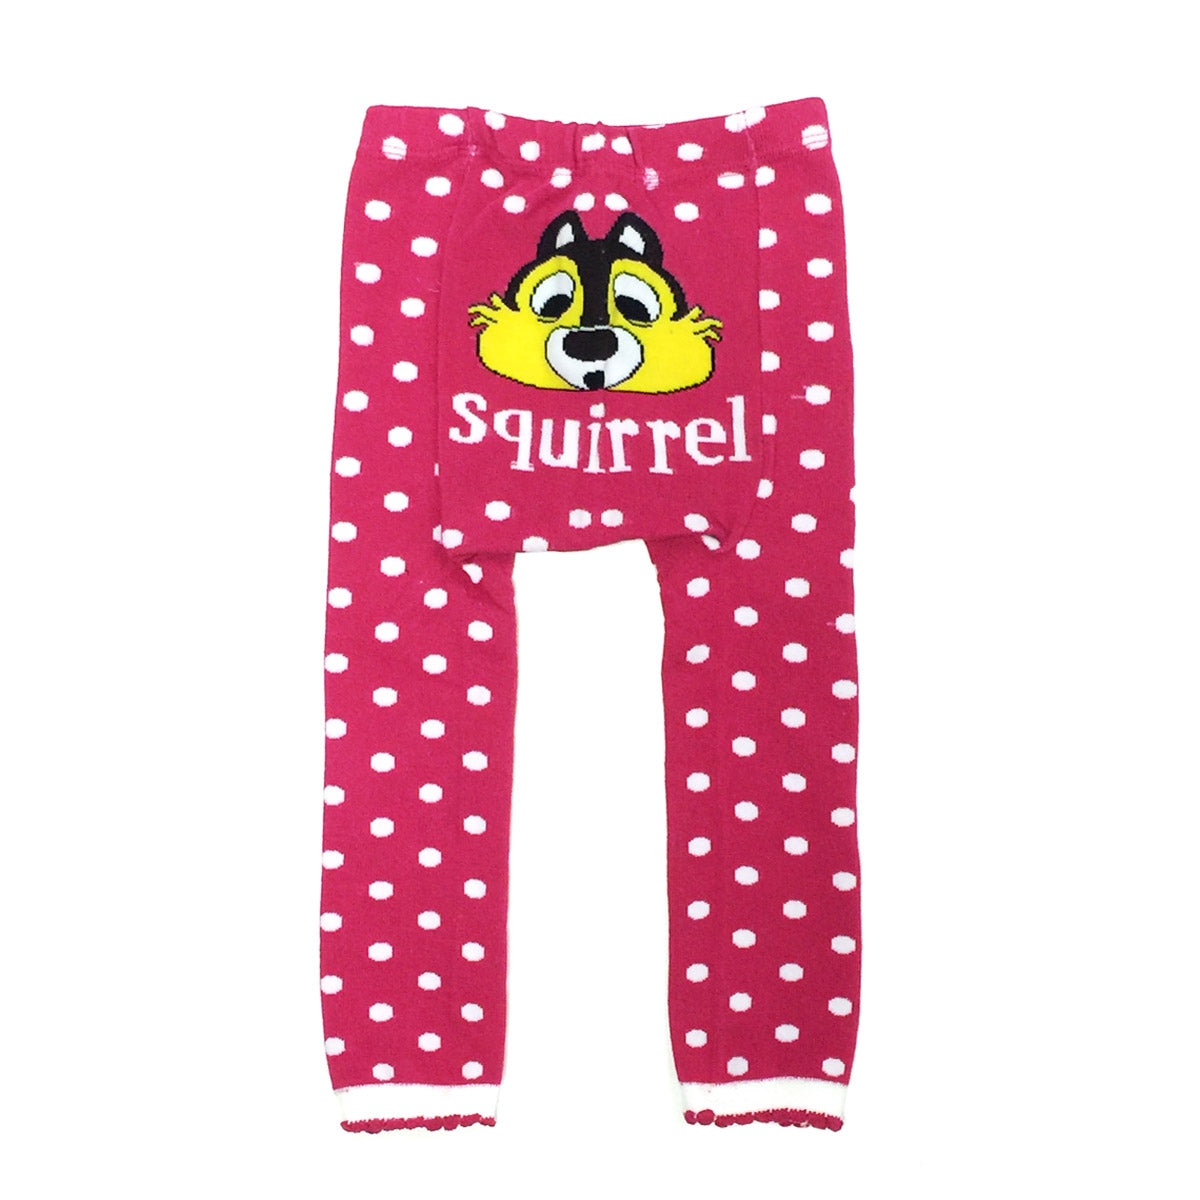 Wrapables Baby & Toddler Busha Leggings, Squirrel and Polka Dots